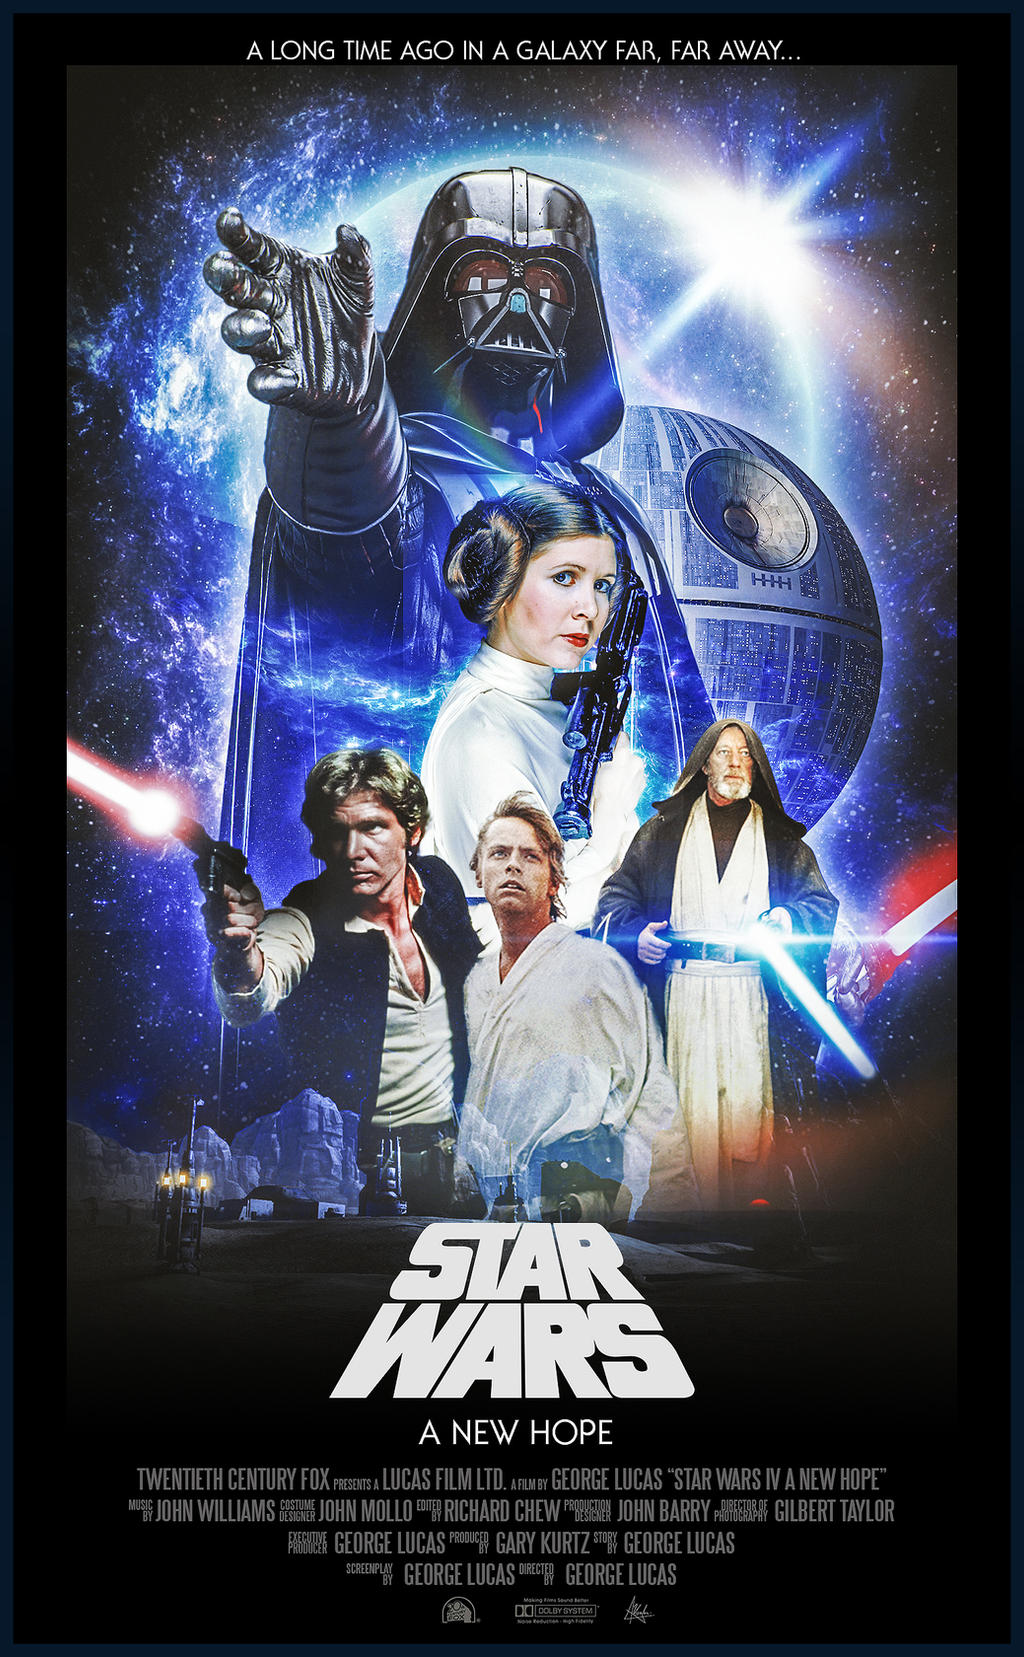 Star Wars Episode Iv A New Hope Poster By Visutox On Deviantart